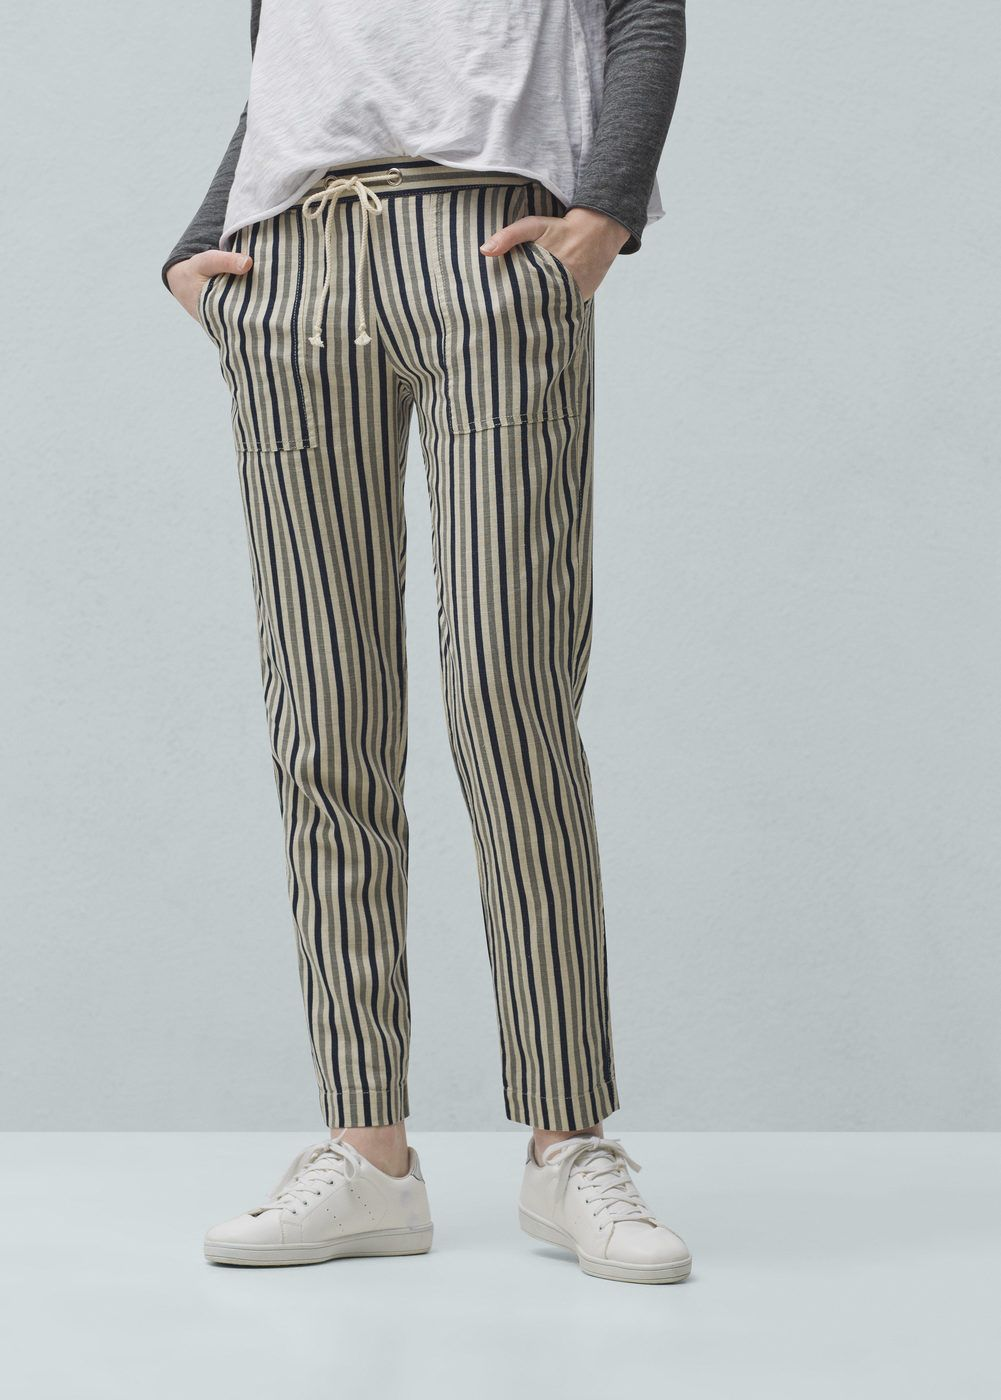 ddc2ecb2b701 Striped linen-blend trousers - Women | Black Tie White Noise (David ...